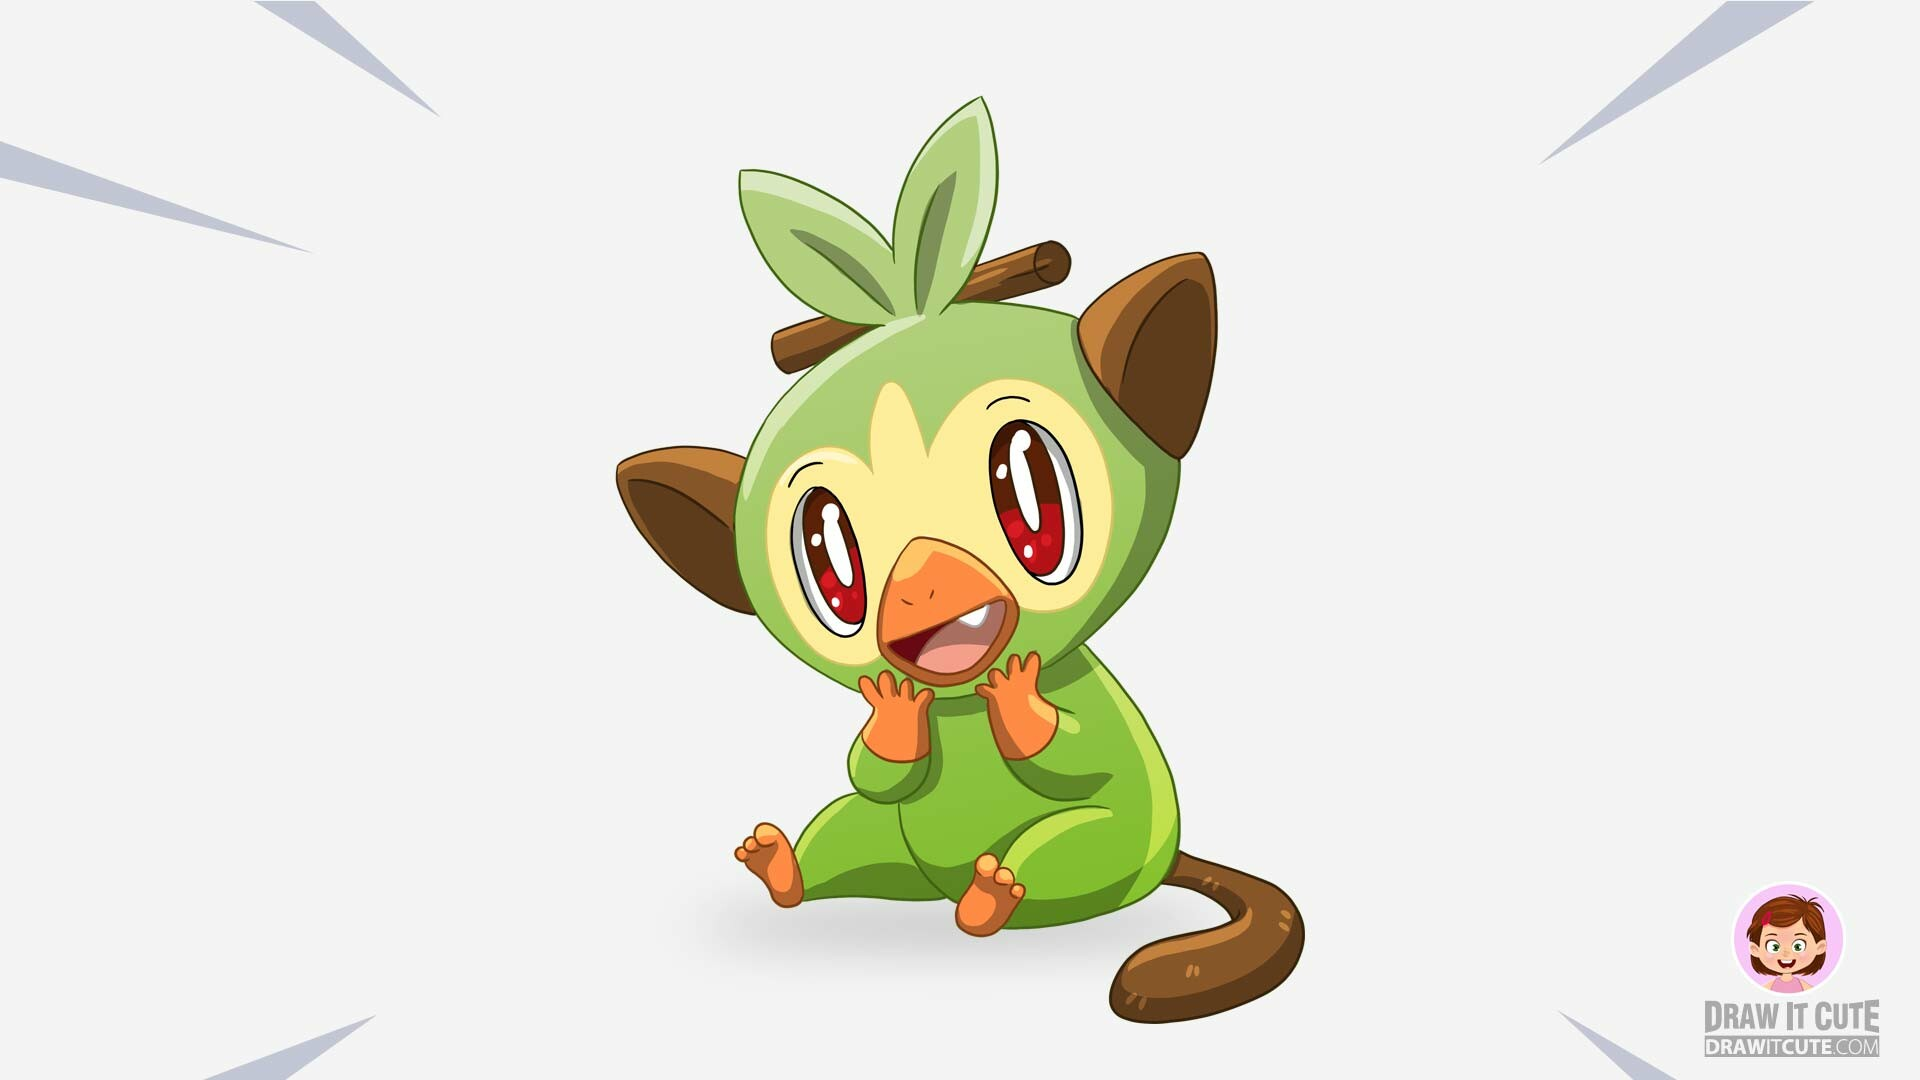 Drawitcute Com How To Draw Grookey Pokemon Super Easy With Coloring Page Video tutorial showing how to draw grookey pokemon. pokemon super easy with coloring page